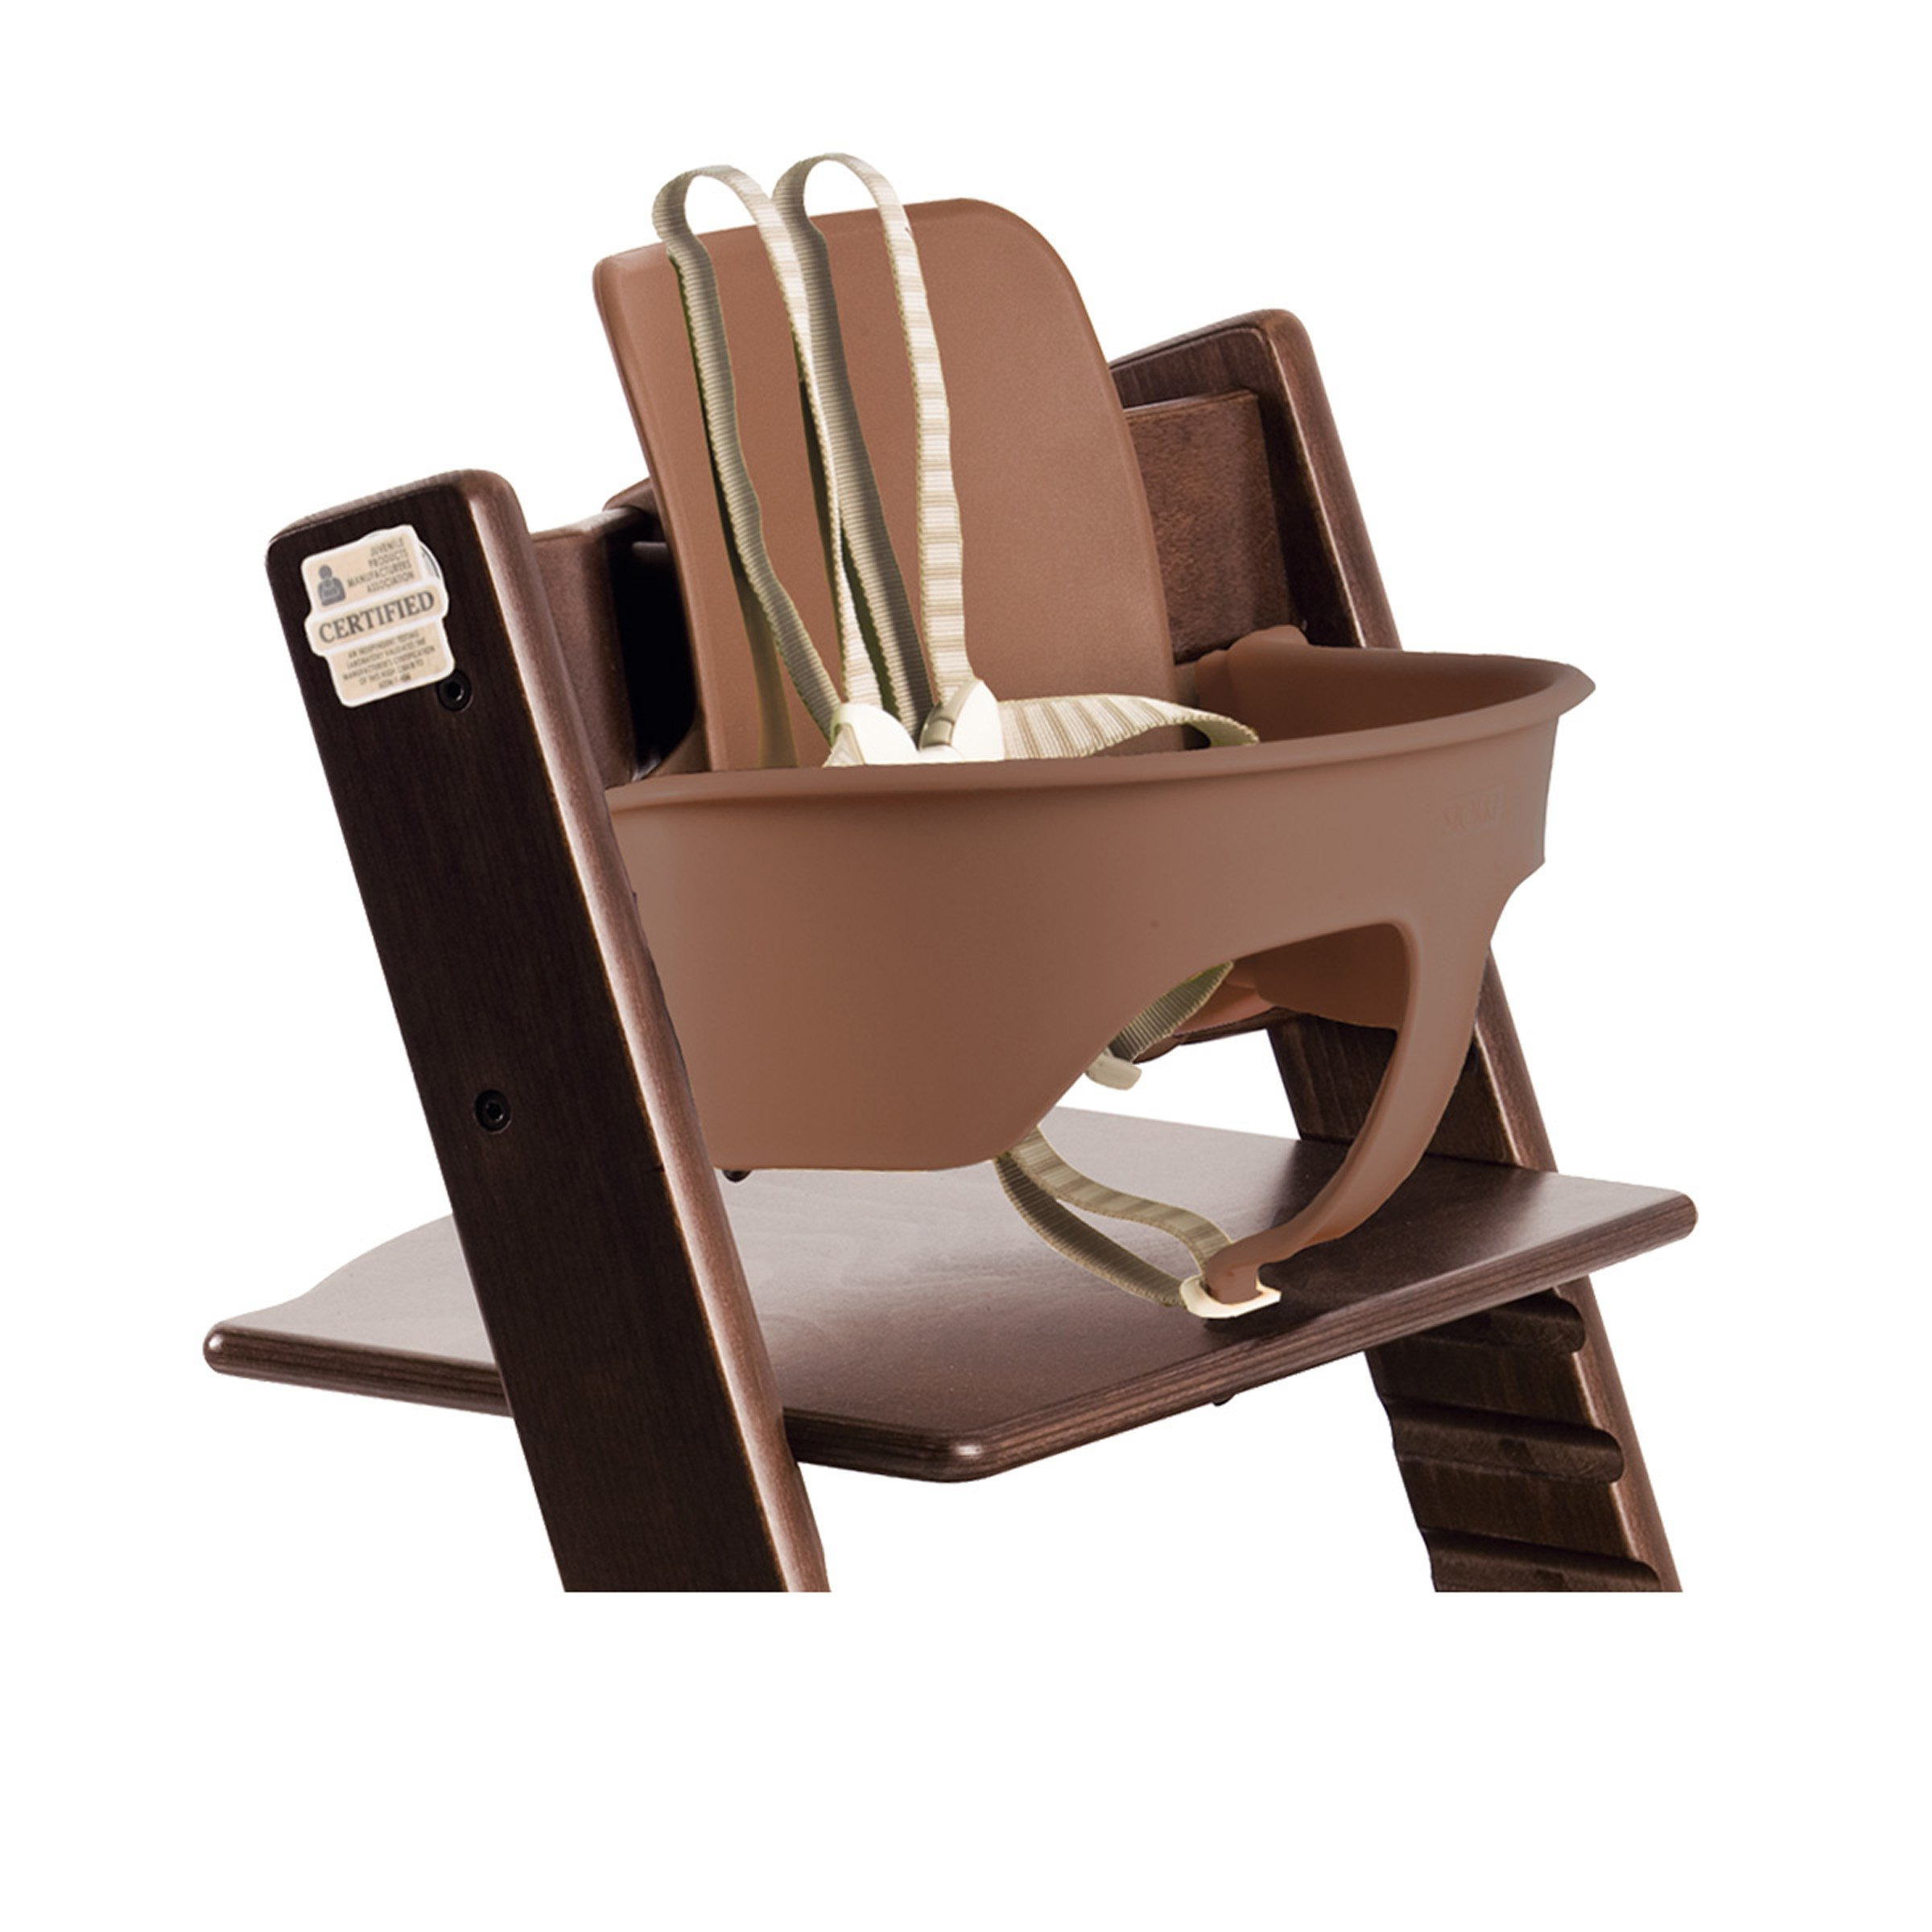 stokke tripp trapp high chair walnut brown baby. Black Bedroom Furniture Sets. Home Design Ideas